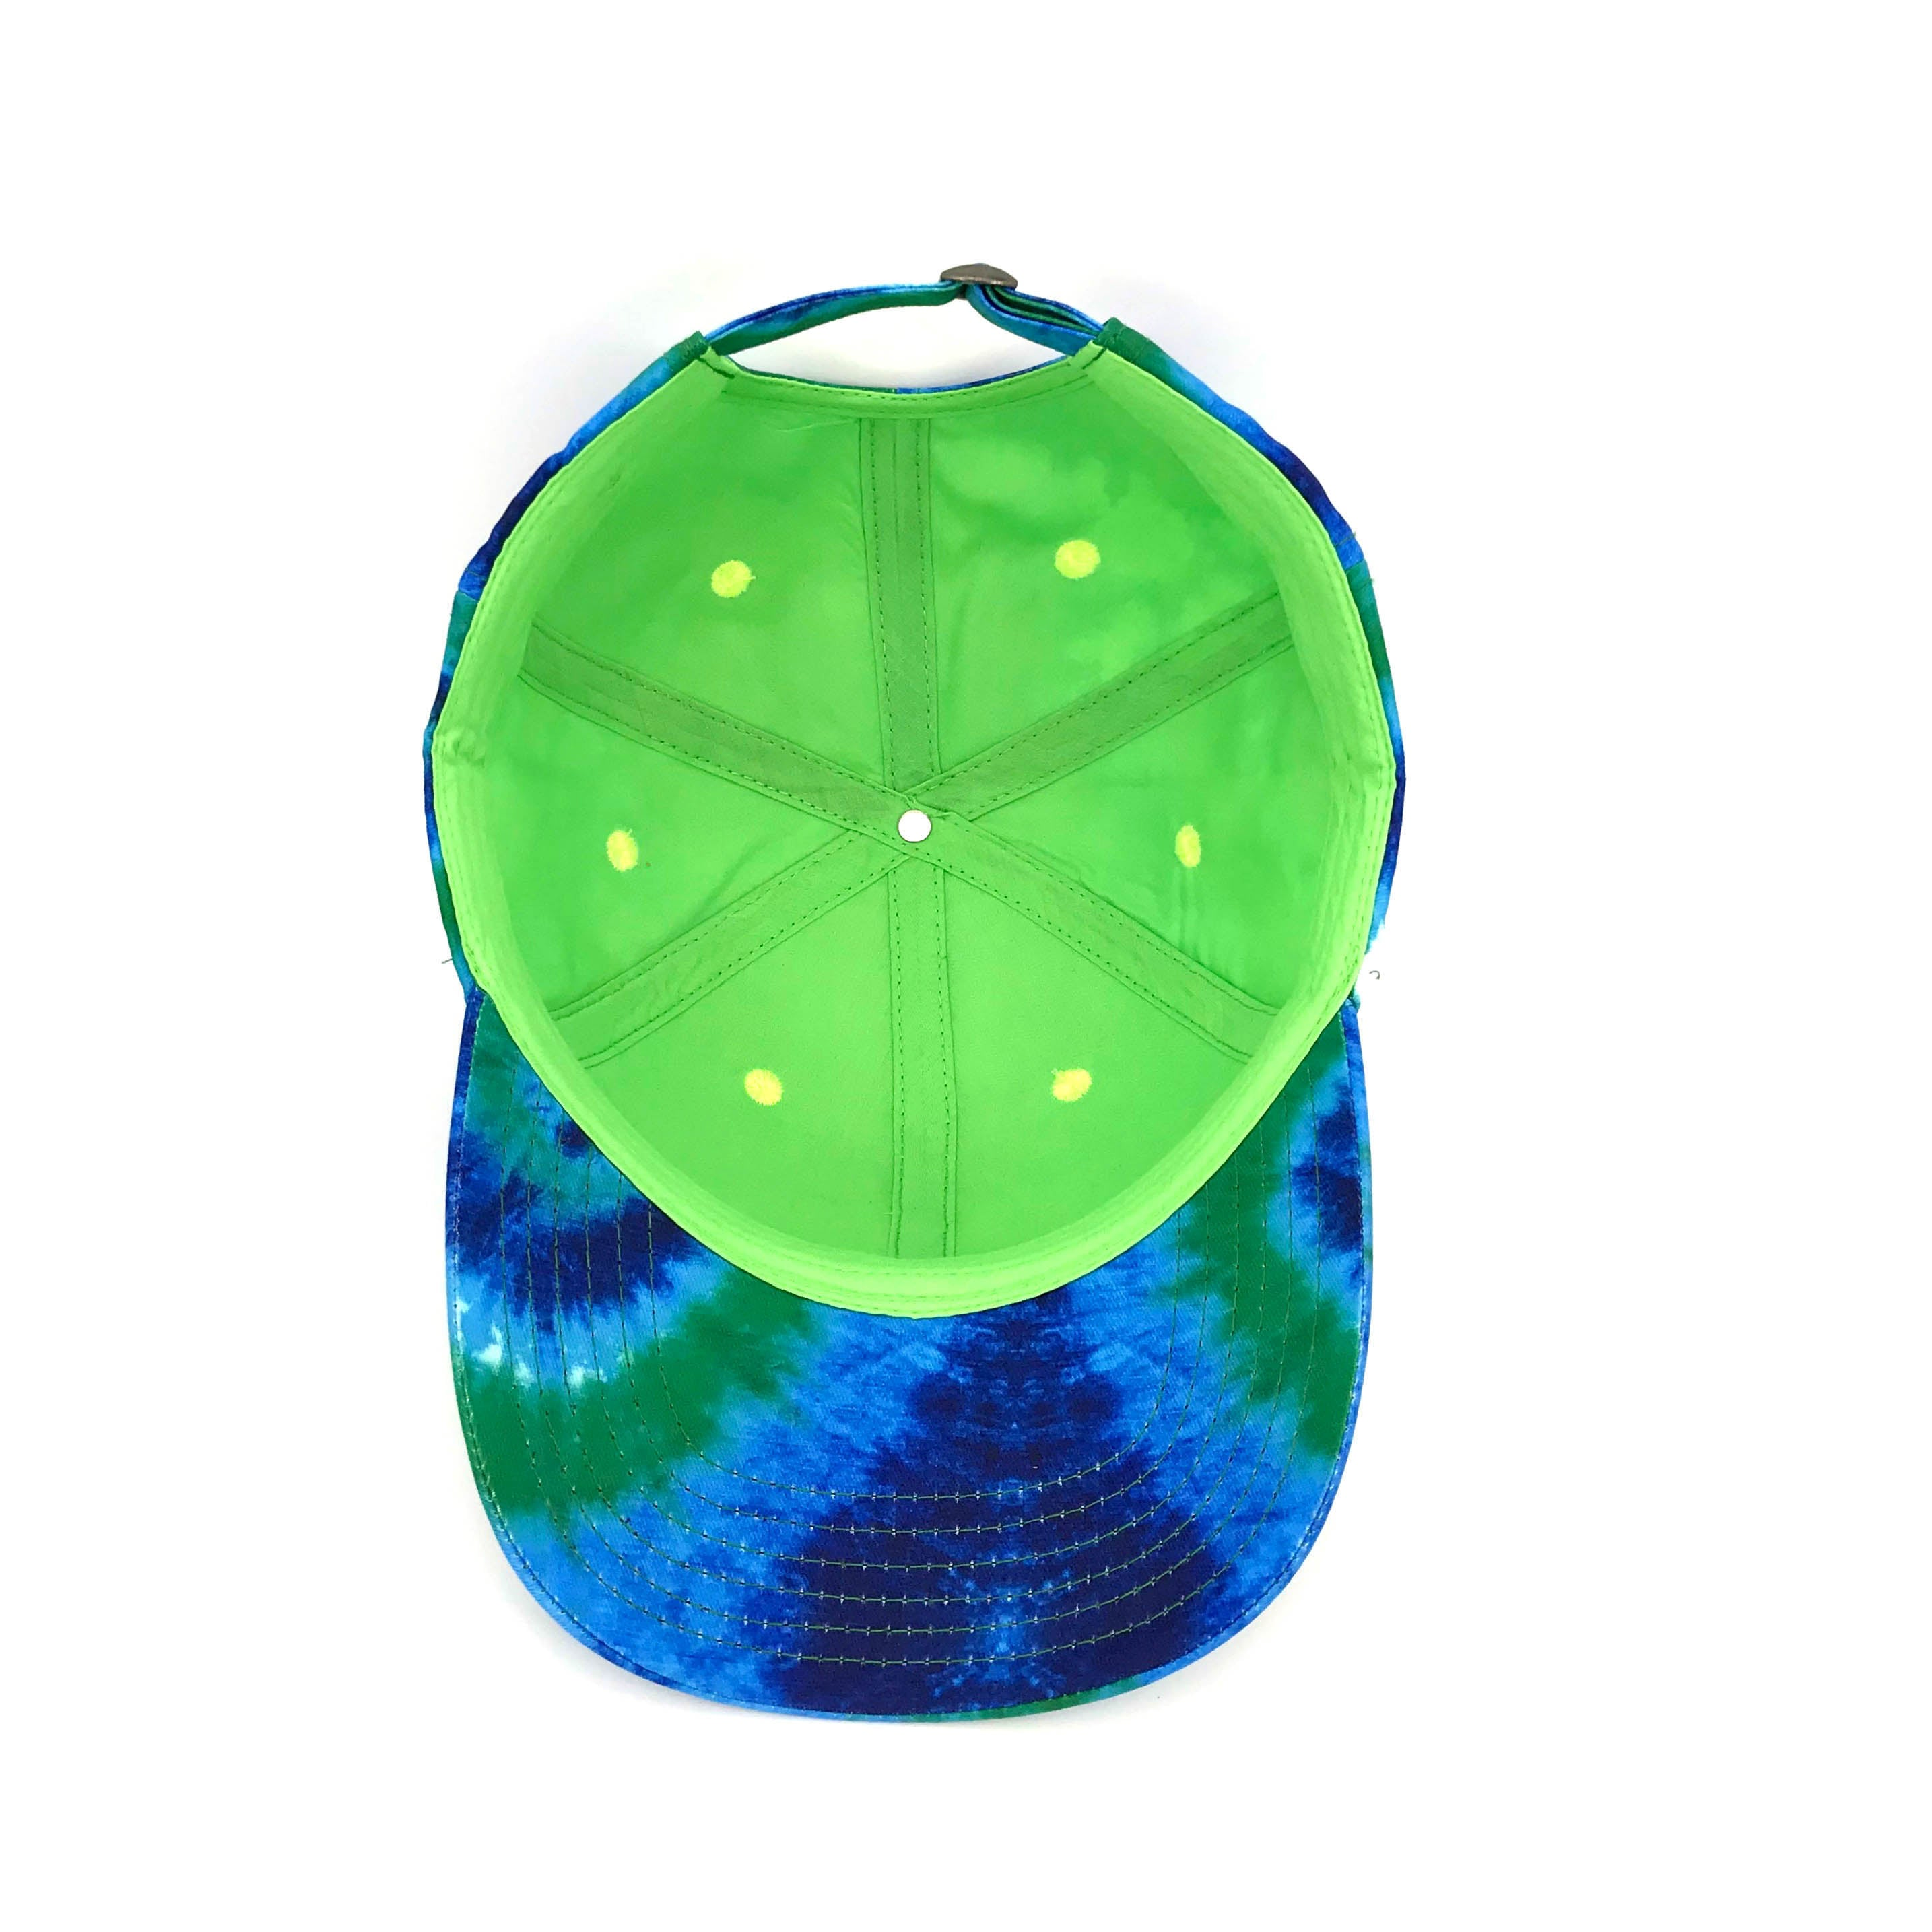 STR3AK SHAM SHUI PO LEISURE CLUB COOL BREEZE TIE-DYE CAP (UNISEX)